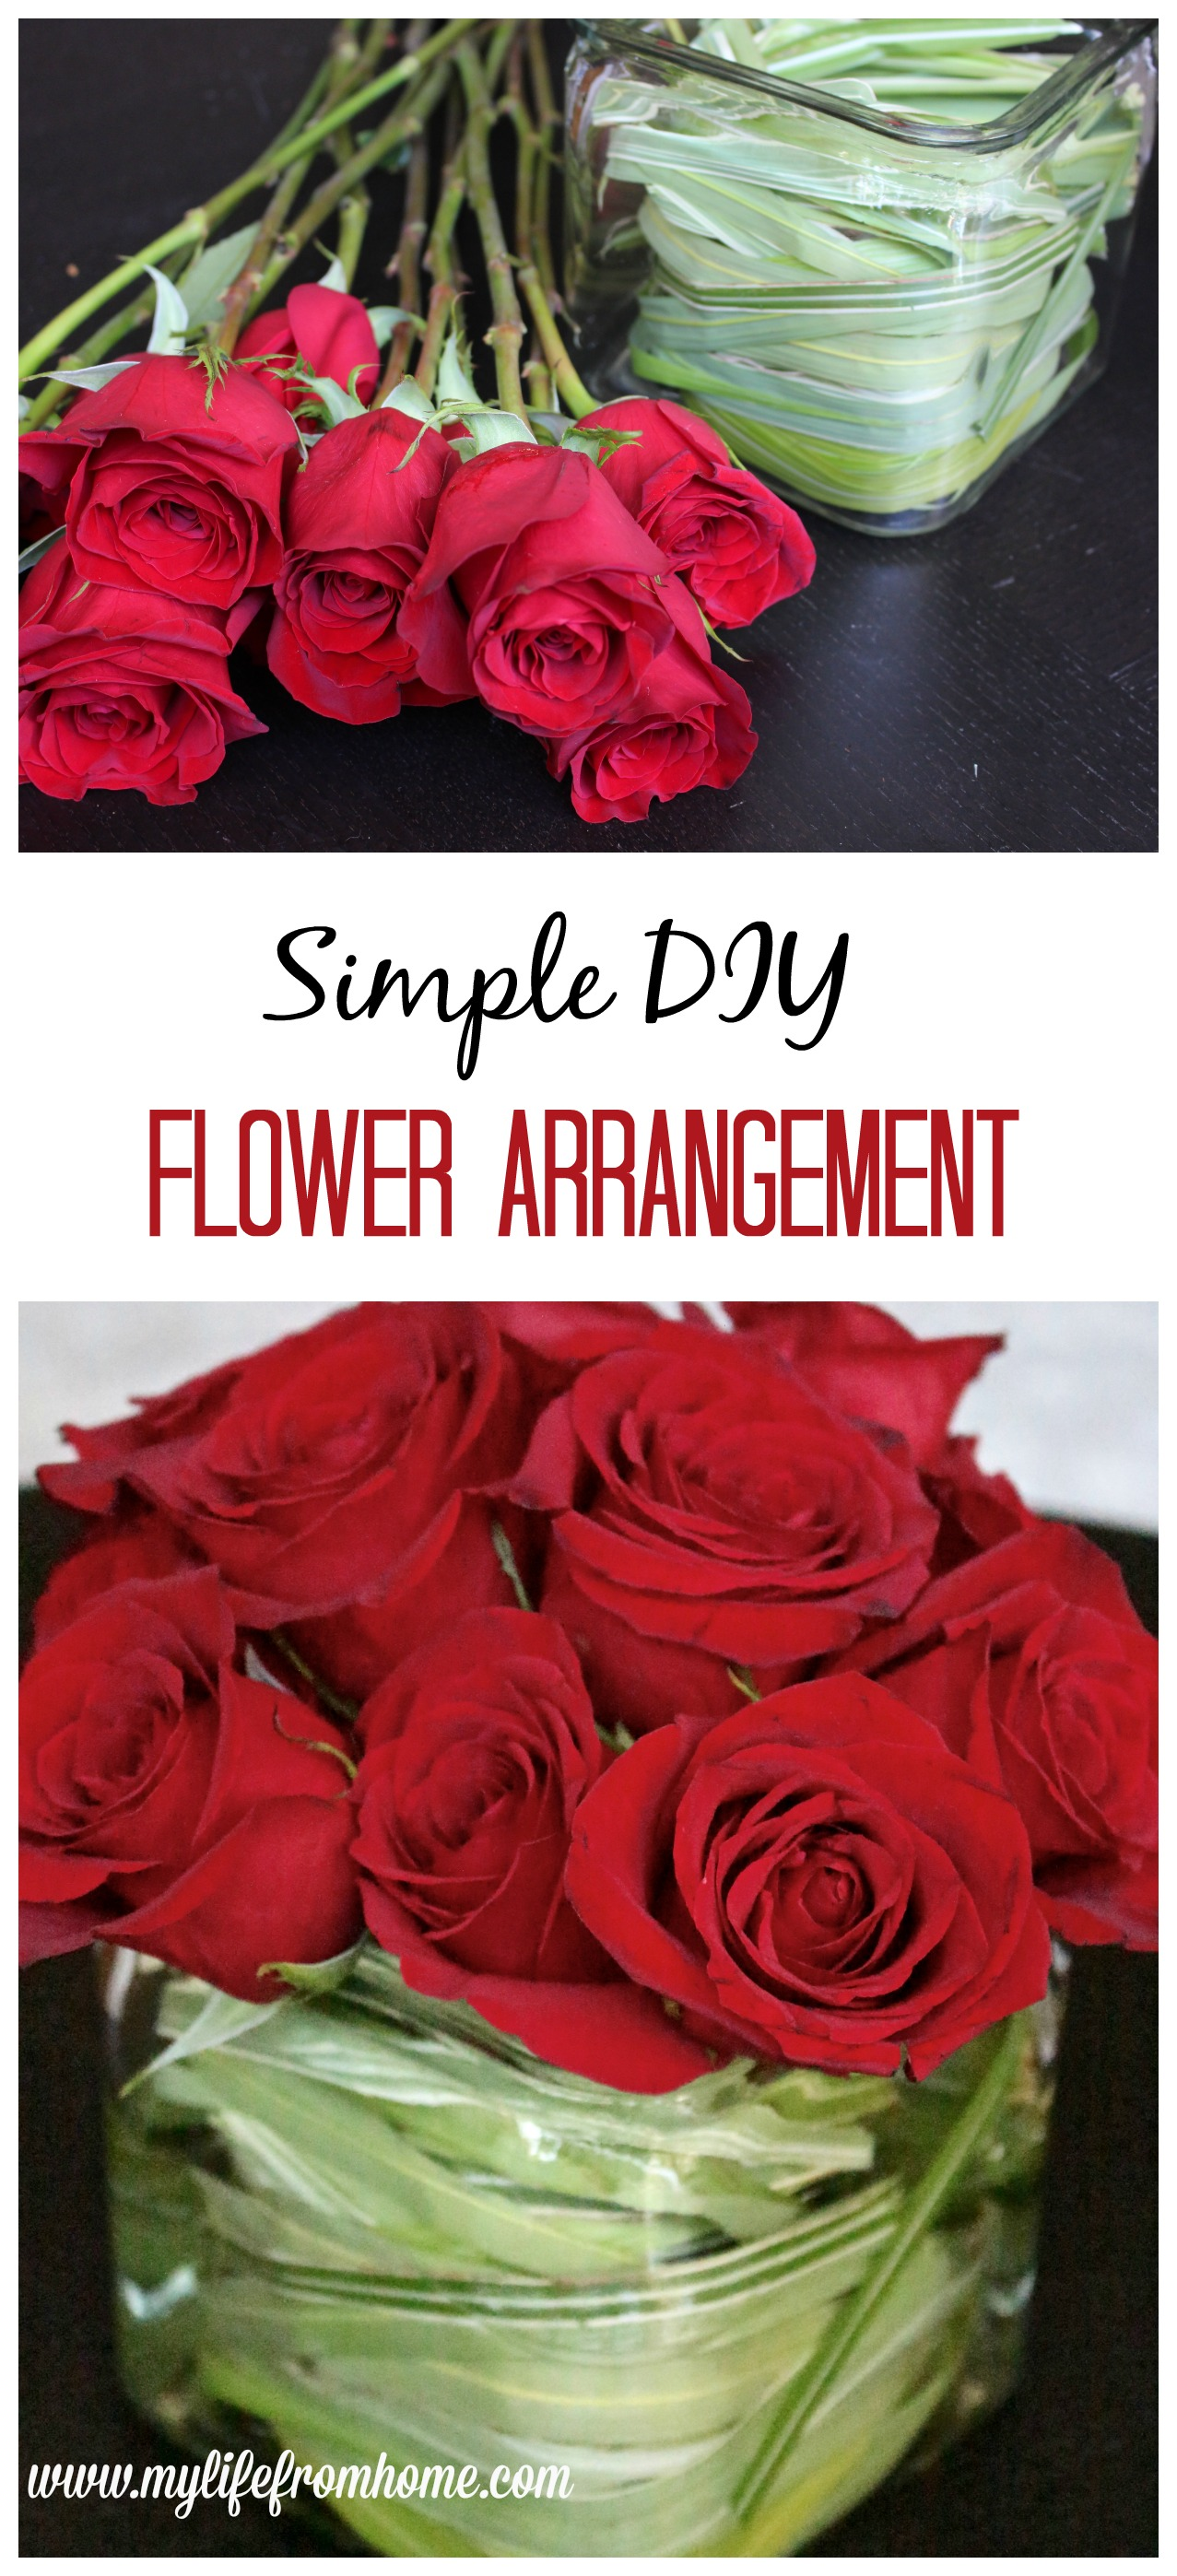 Simple DIY Flower Arrangement roses flower arranging DIY flower arrangement hand bouquet grocery store flowers